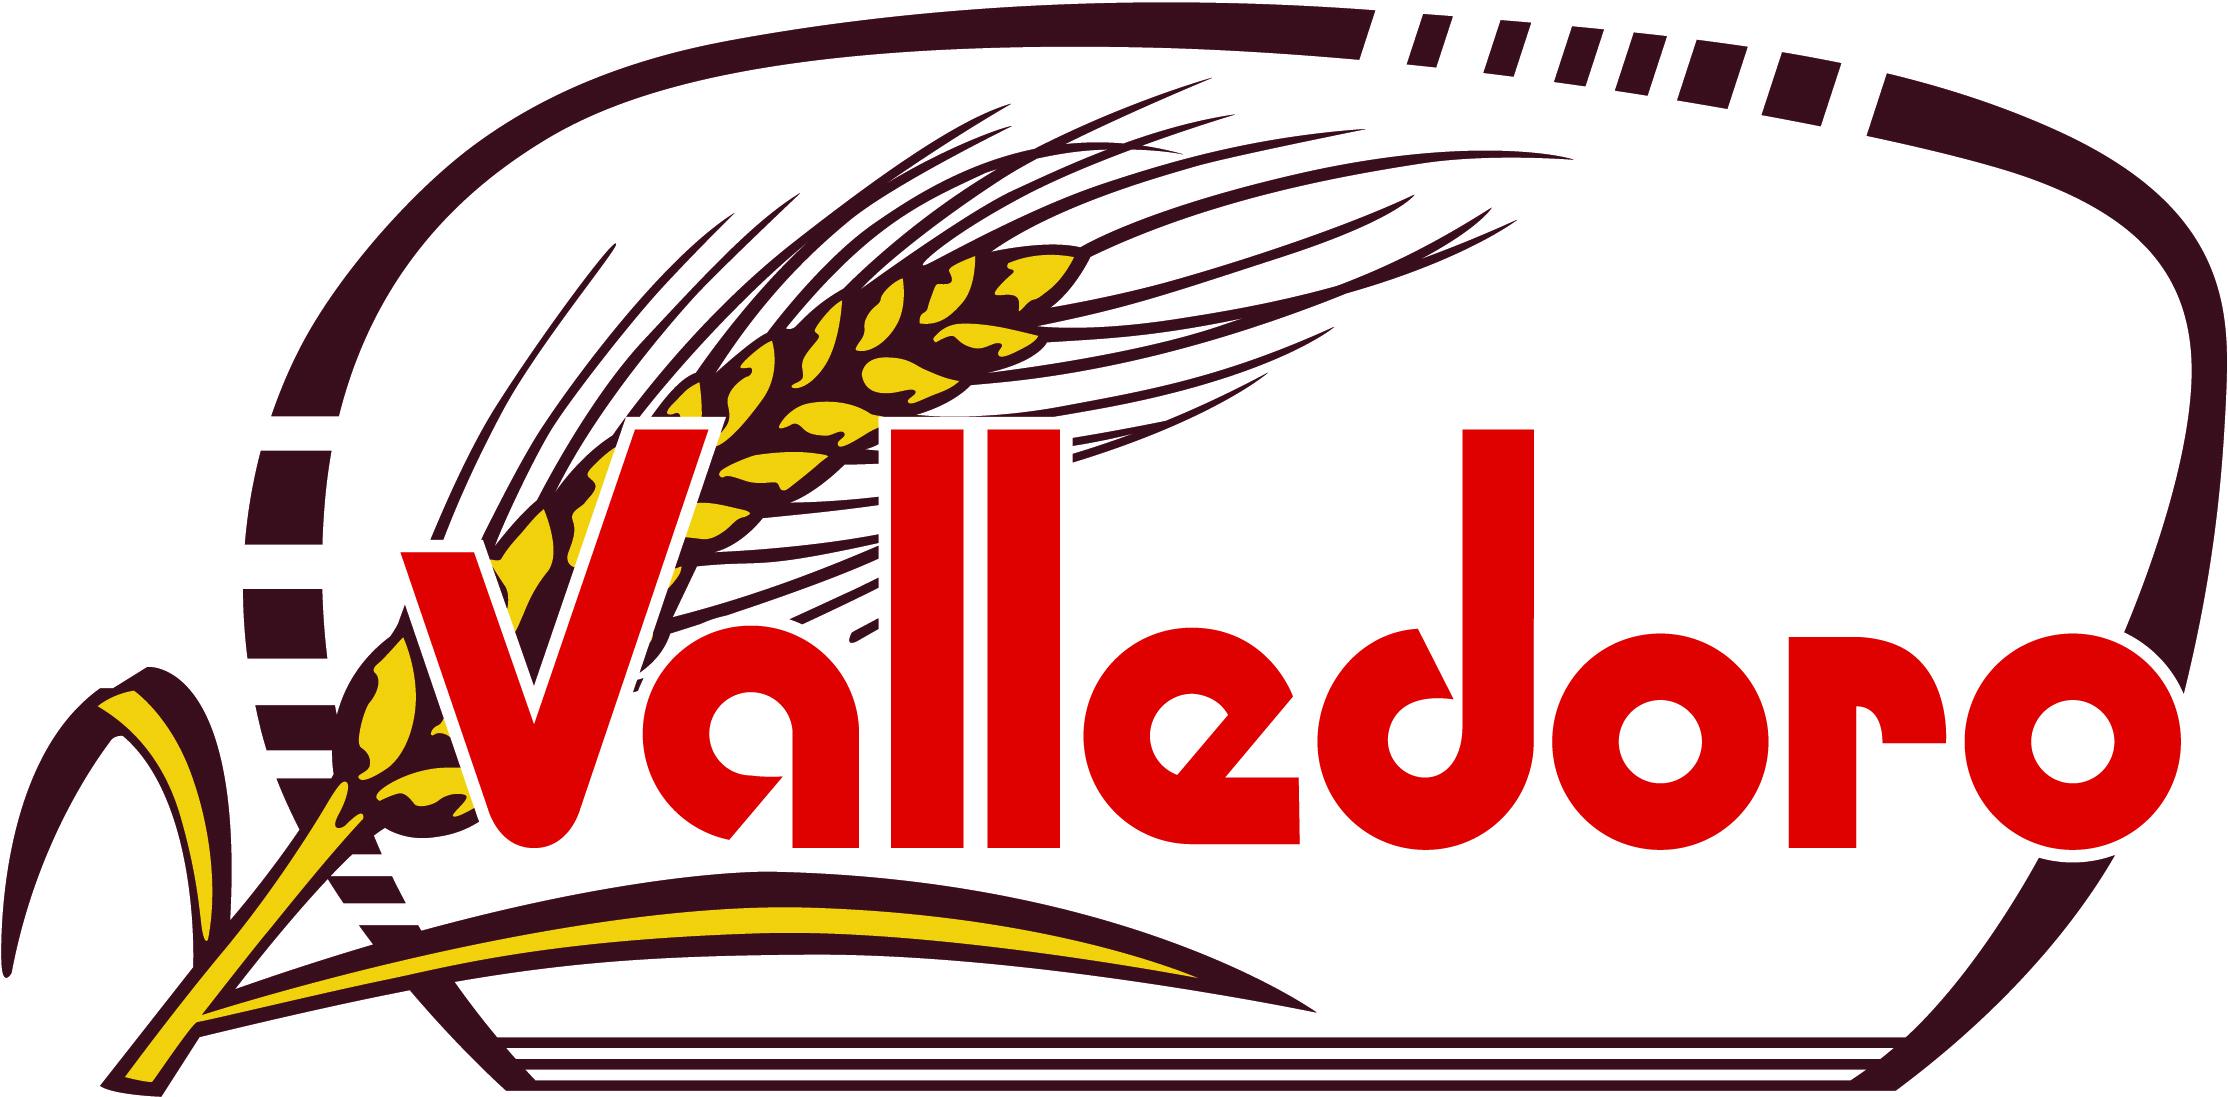 VALLEDORO SPA                   /// logo